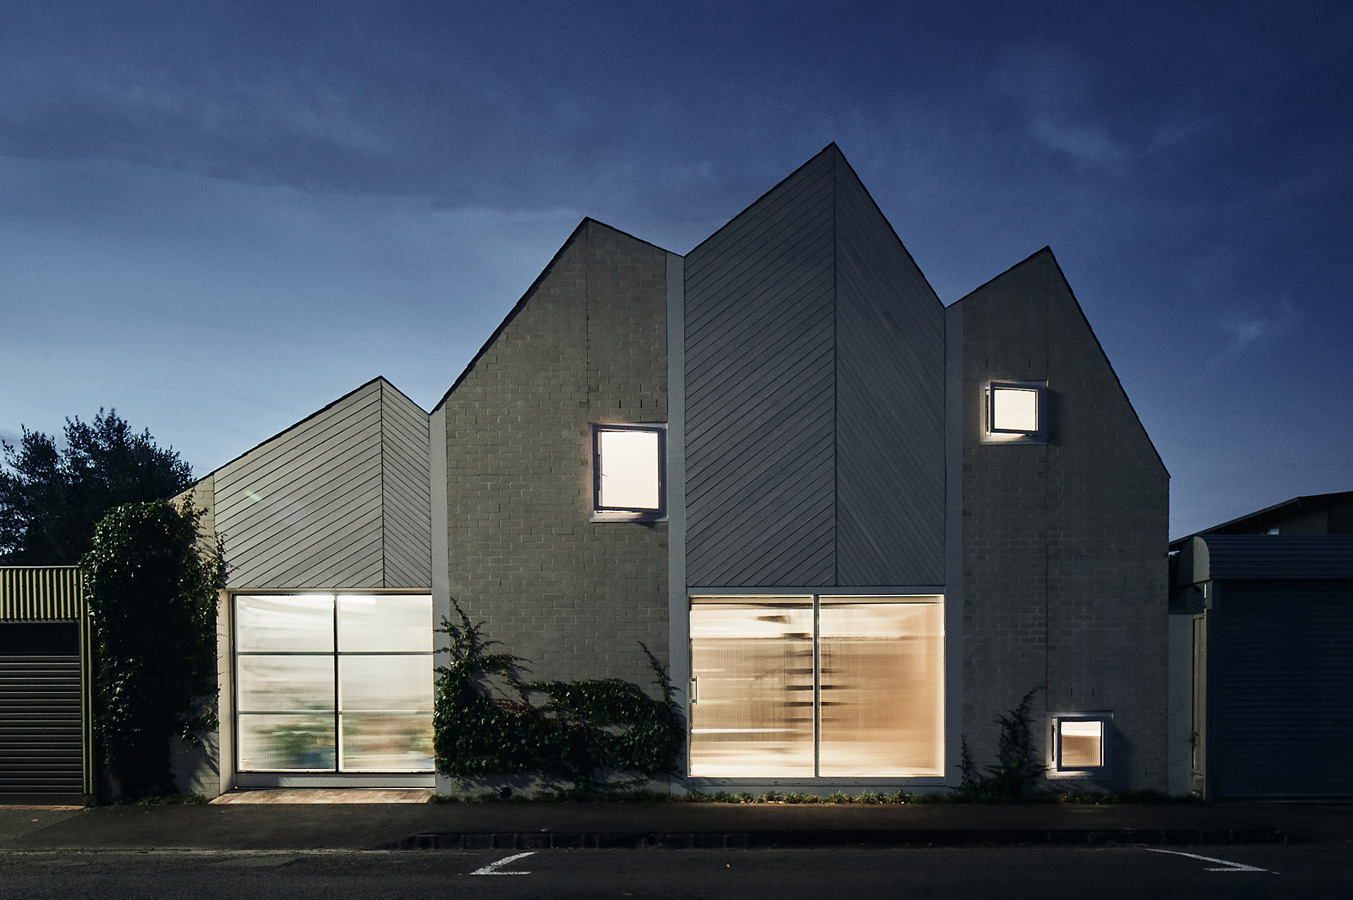 RaeRae, Austin Maynard Architects, Overend Constructions, back facade at night, zigzag roof line, architectural, design